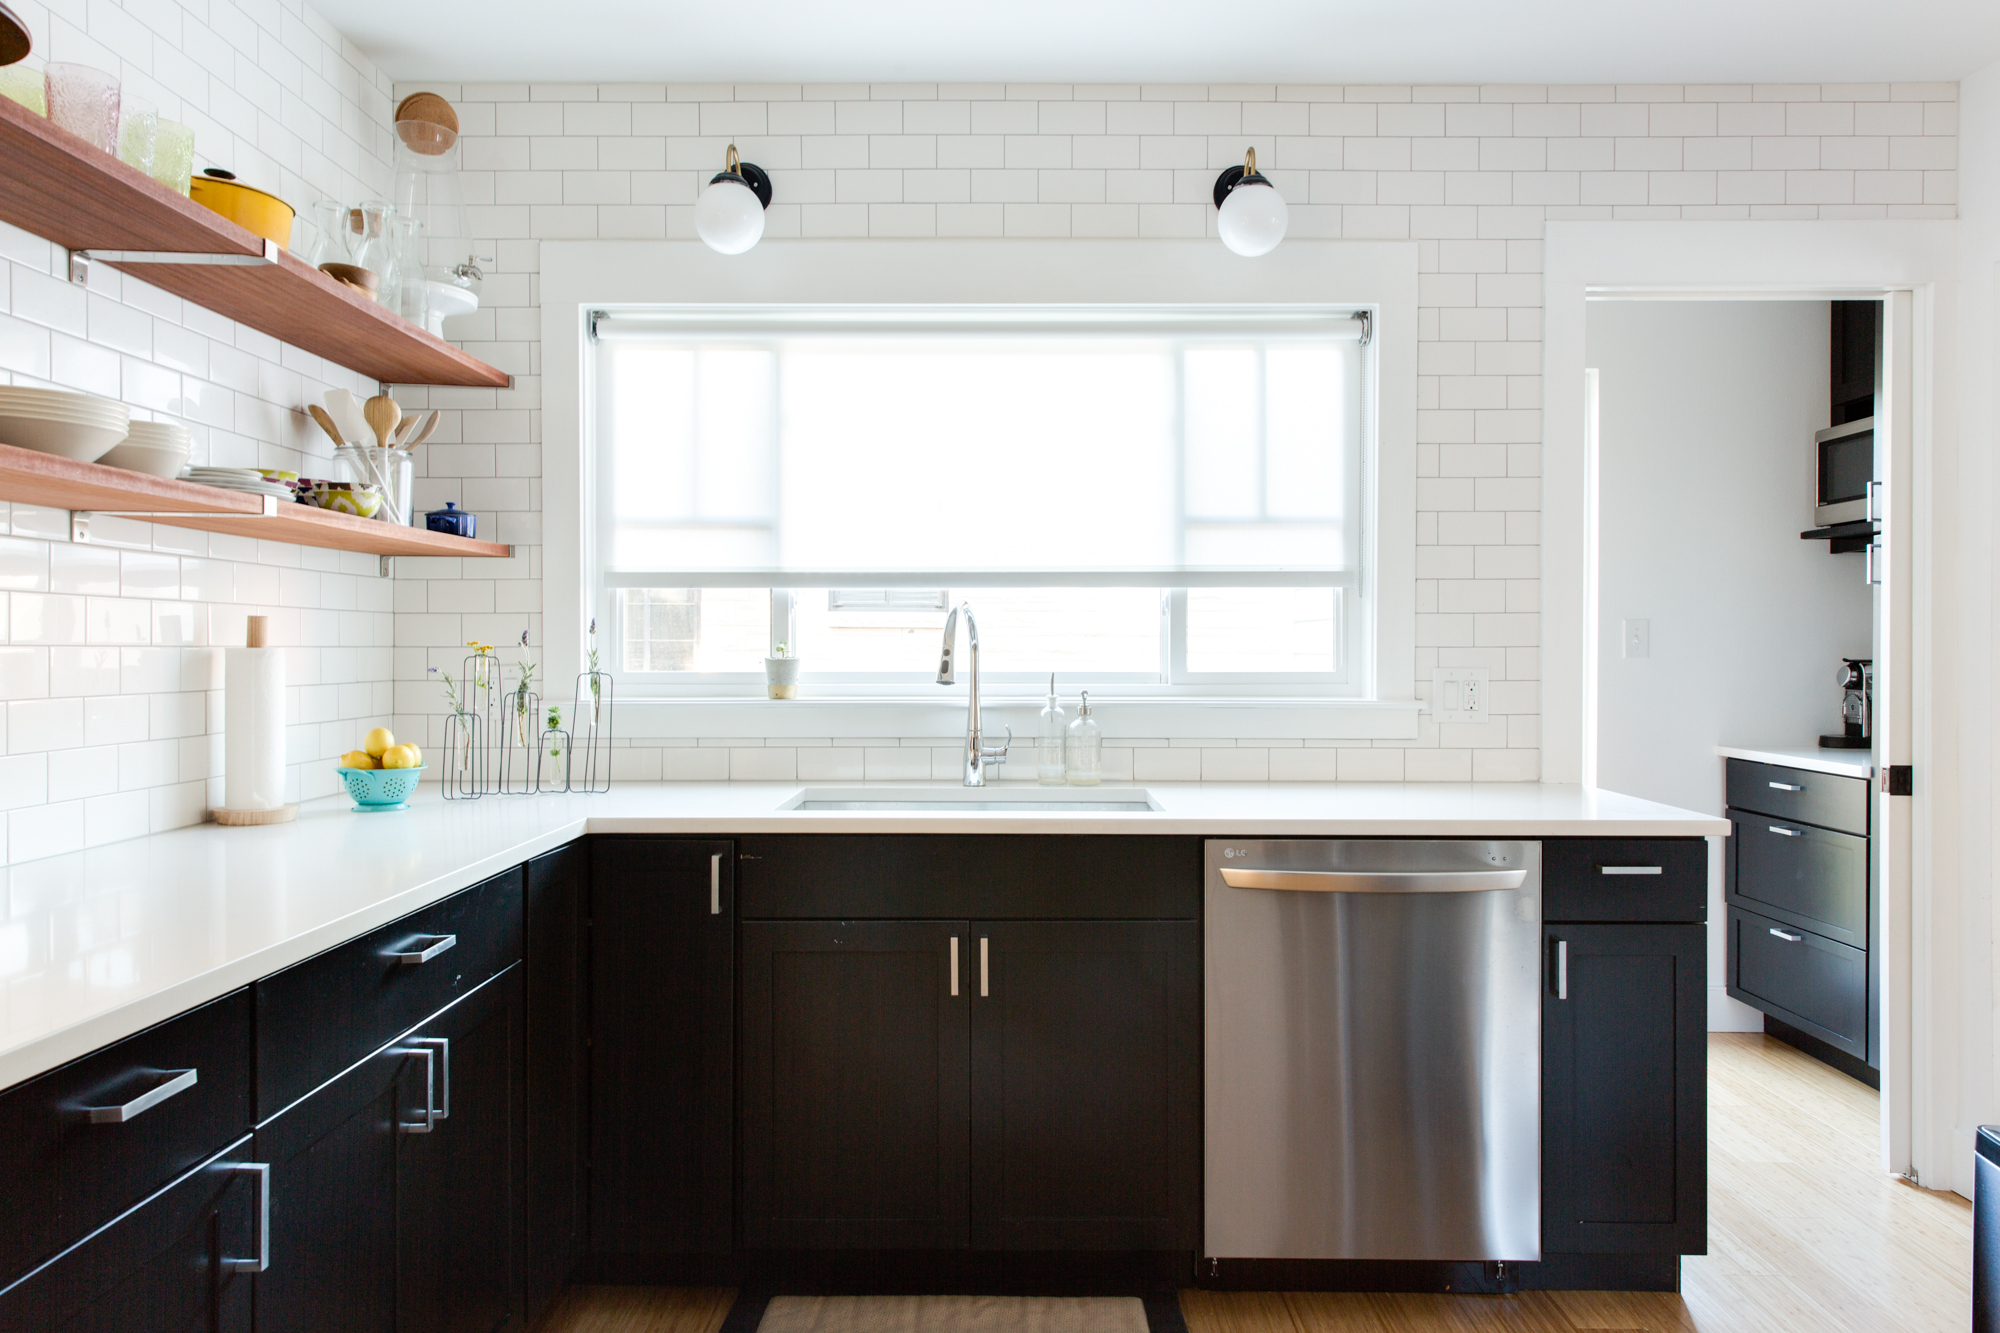 Bad Kitchen Design According To Professionals Apartment Therapy